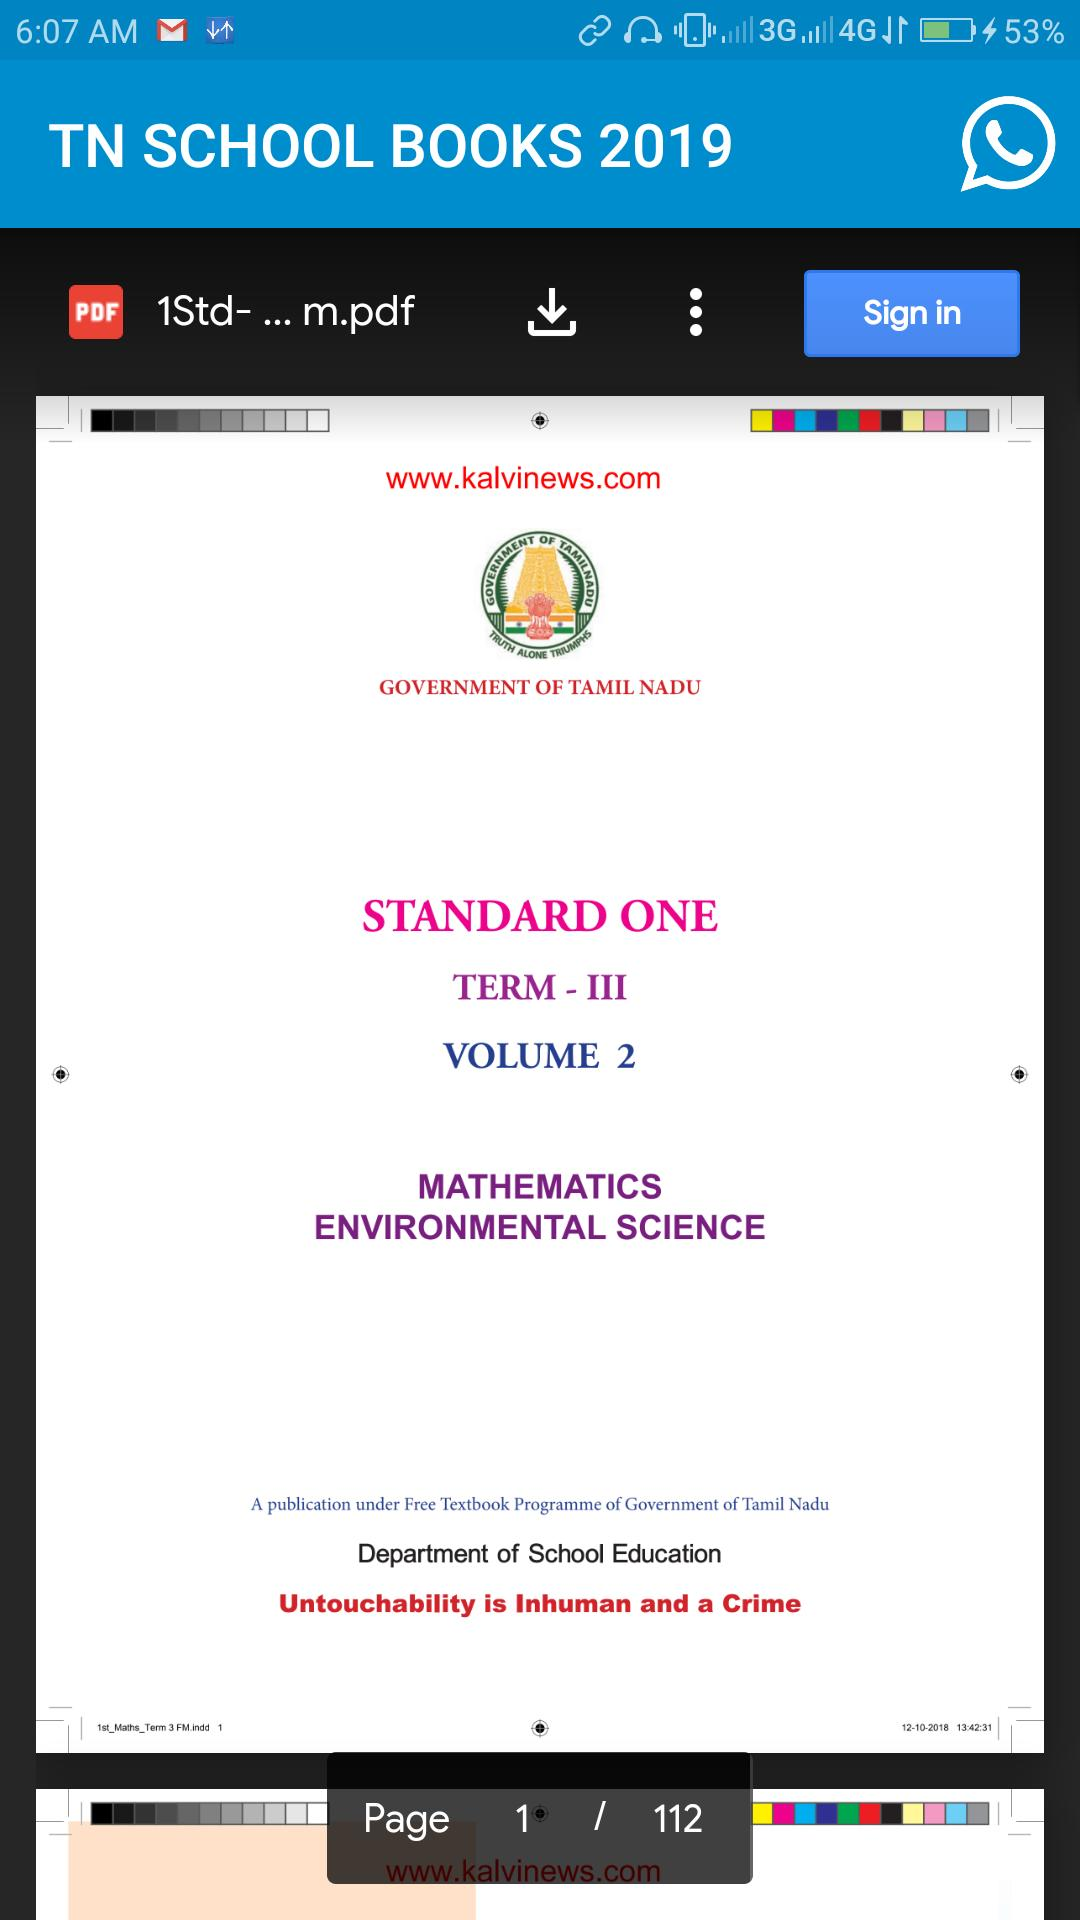 TN NEW SYLLABUS TEXT BOOKS 2019 for Android - APK Download